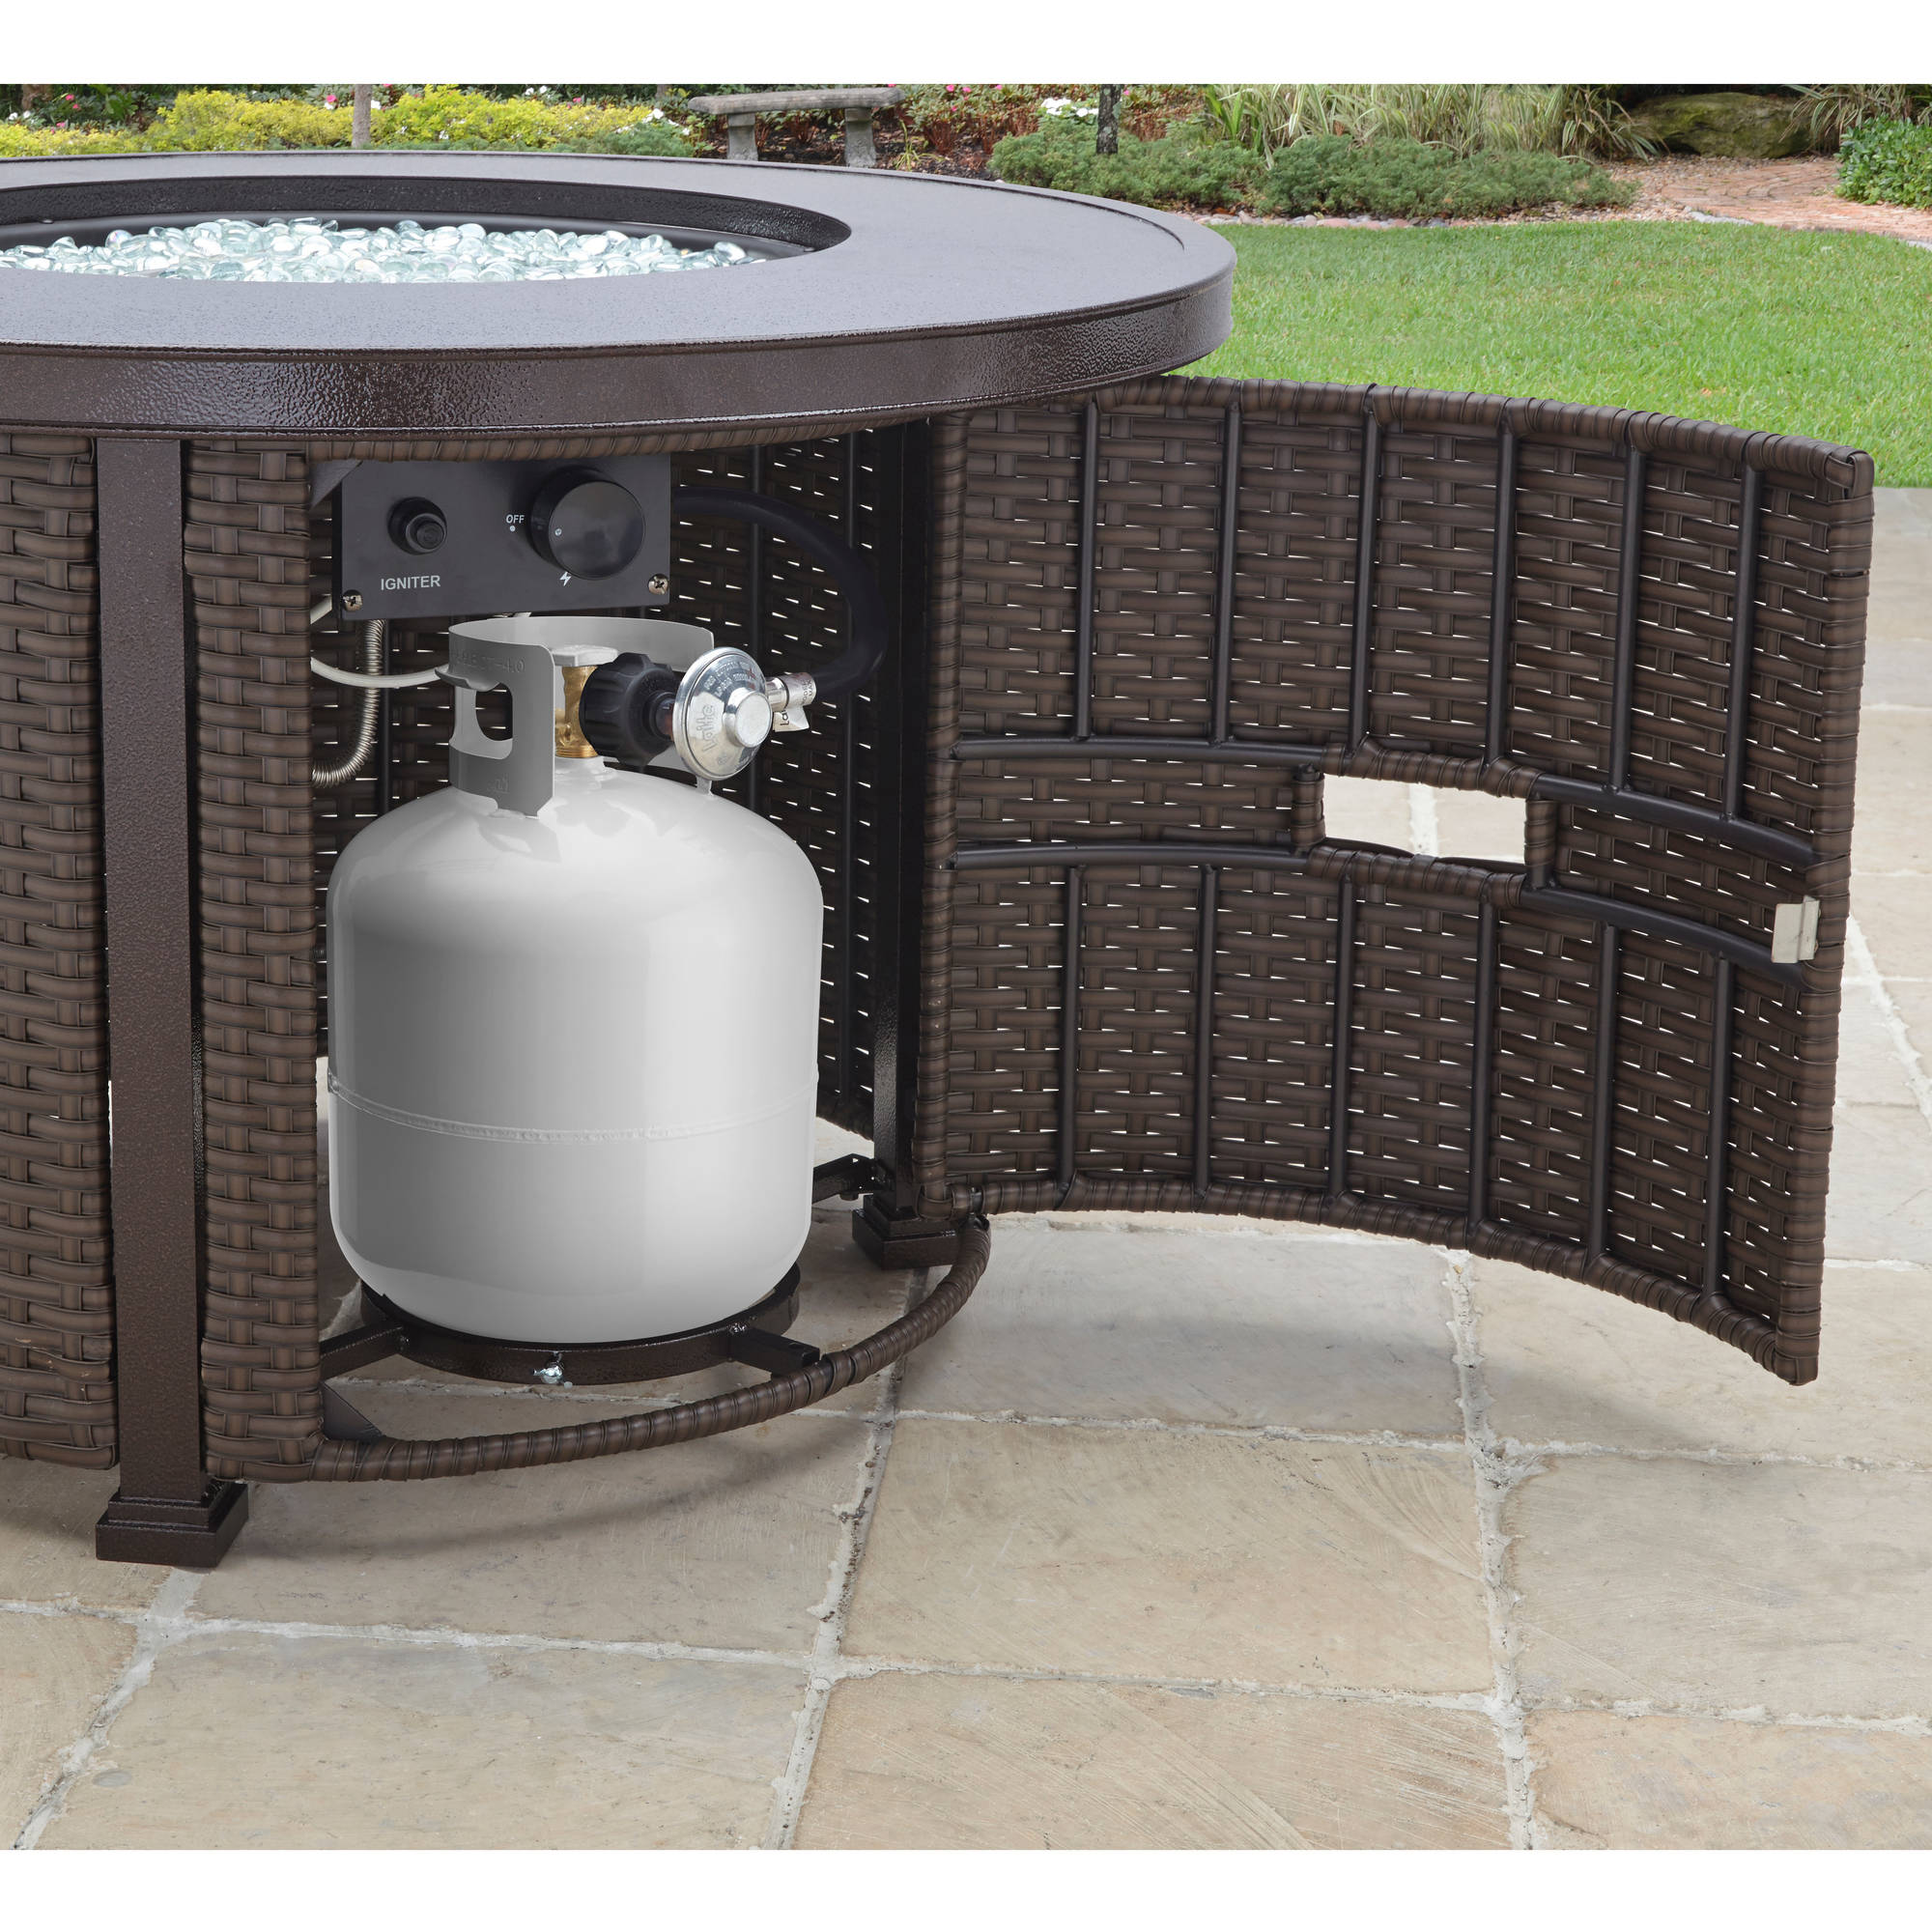 Better Homes and Gardens Colebrook 37 Gas Fire Pit Best Fire Pits